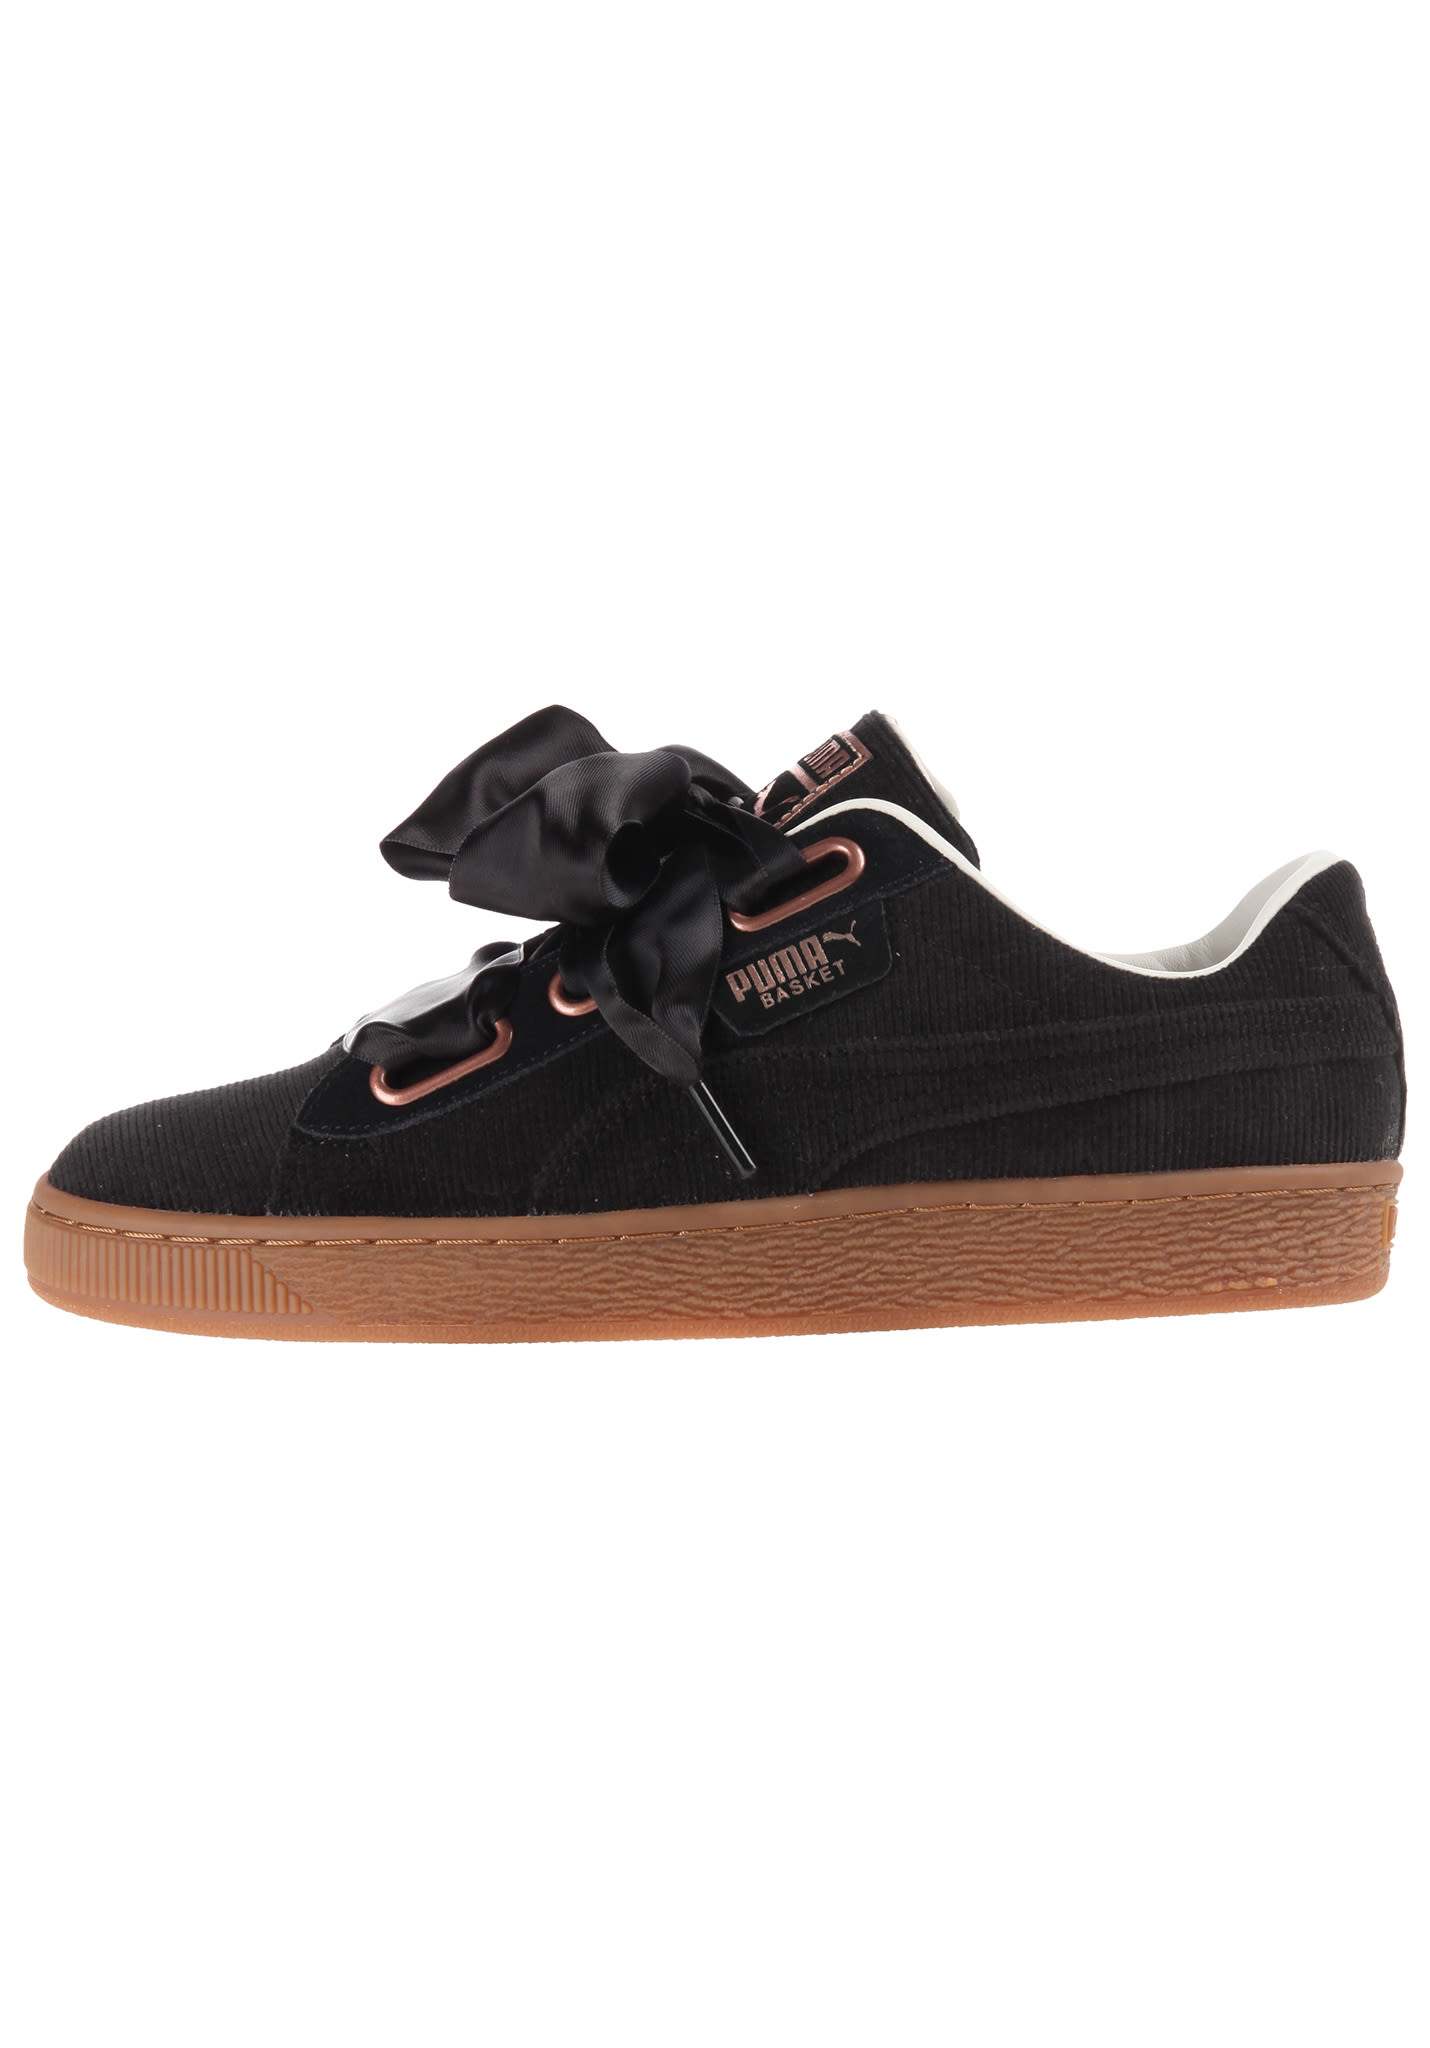 reputable site 9dec9 eb70a Puma Basket Heart Corduroy - Sneakers for Women - Black